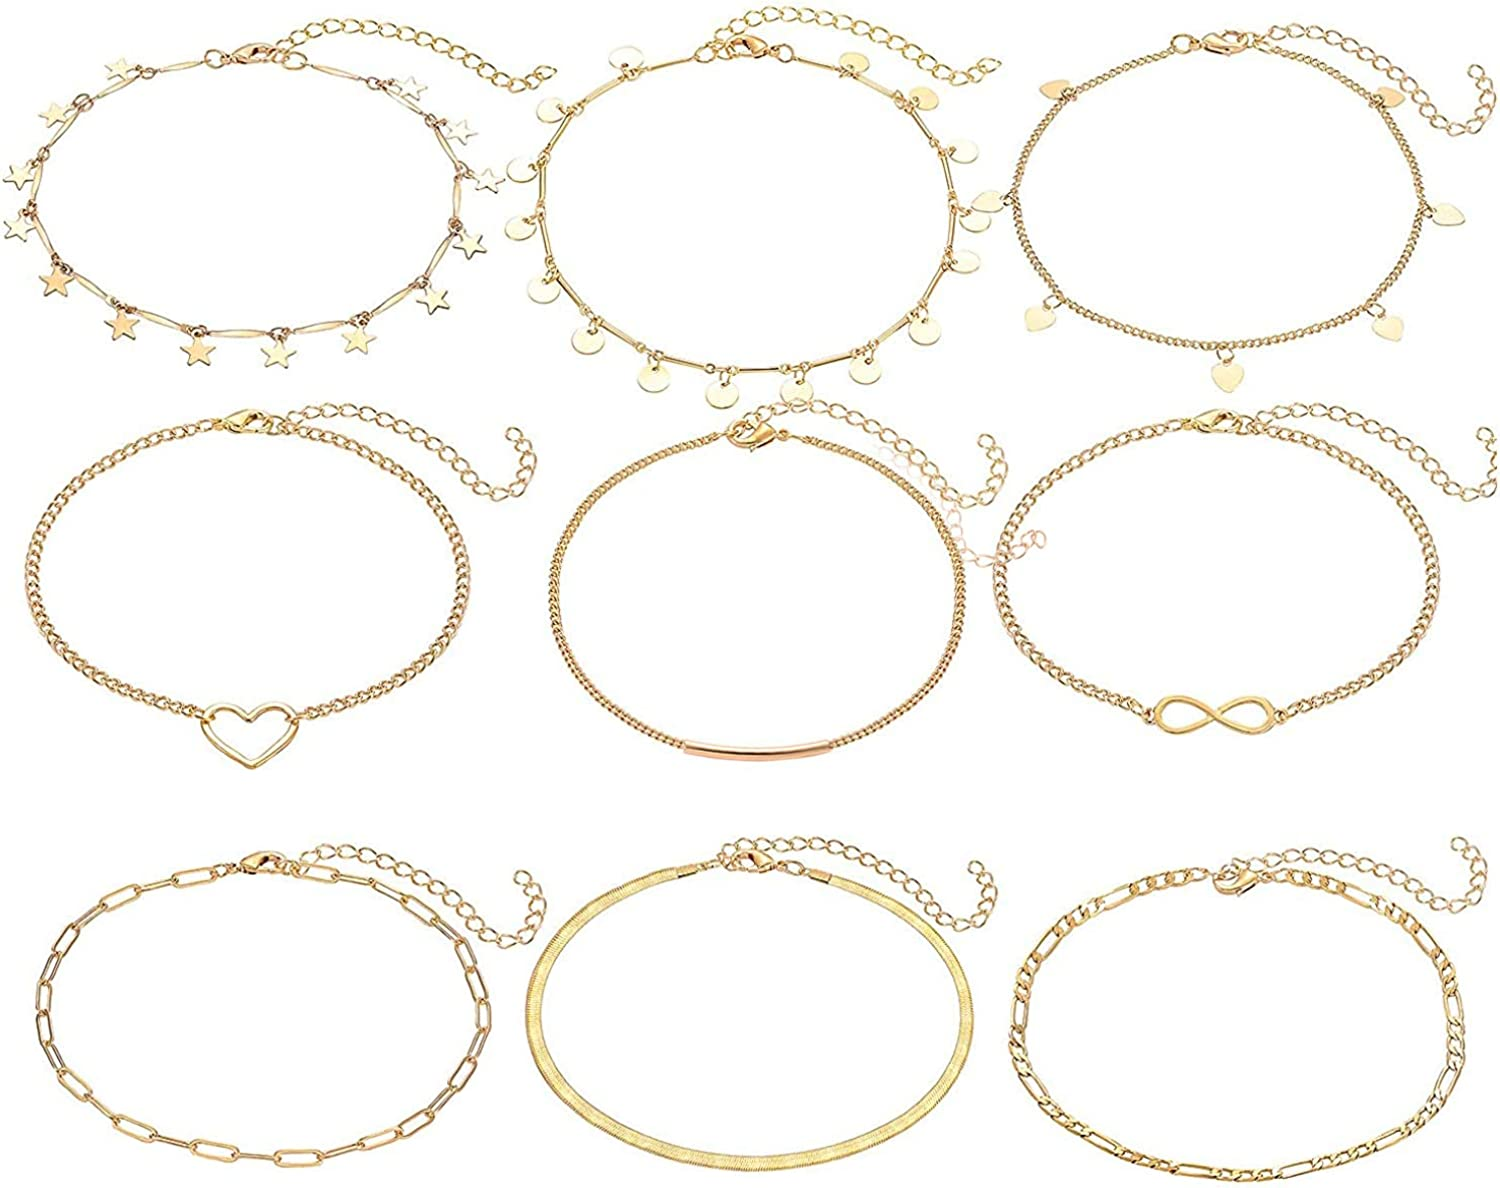 YAHPERN 9PC Anklets for Woman Gold Silver Ankle Bracelet Boho Adjustable Layered Chain Anklet Surf Beach Foot Jewelry